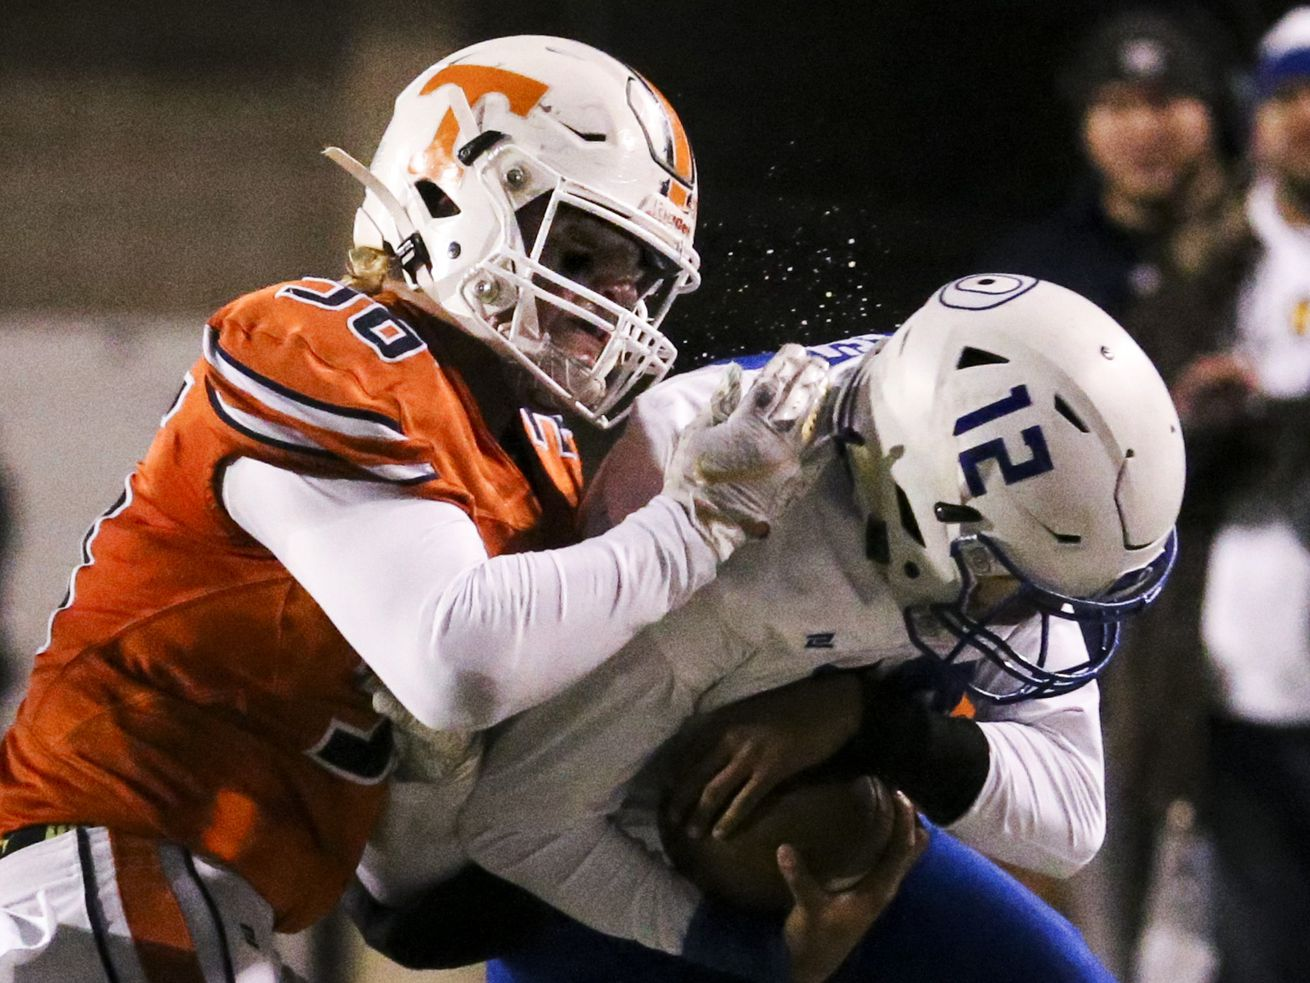 Timpview Thunderbirds defensive end Cael Richardson (36) collides with Orem Tigers quarterback Micah Fe'a (12) shoving him out of bounds during the first half of the 5A state high school football game at Rice-Eccles Stadium in Salt Lake City on Friday, Nov. 22, 2019.